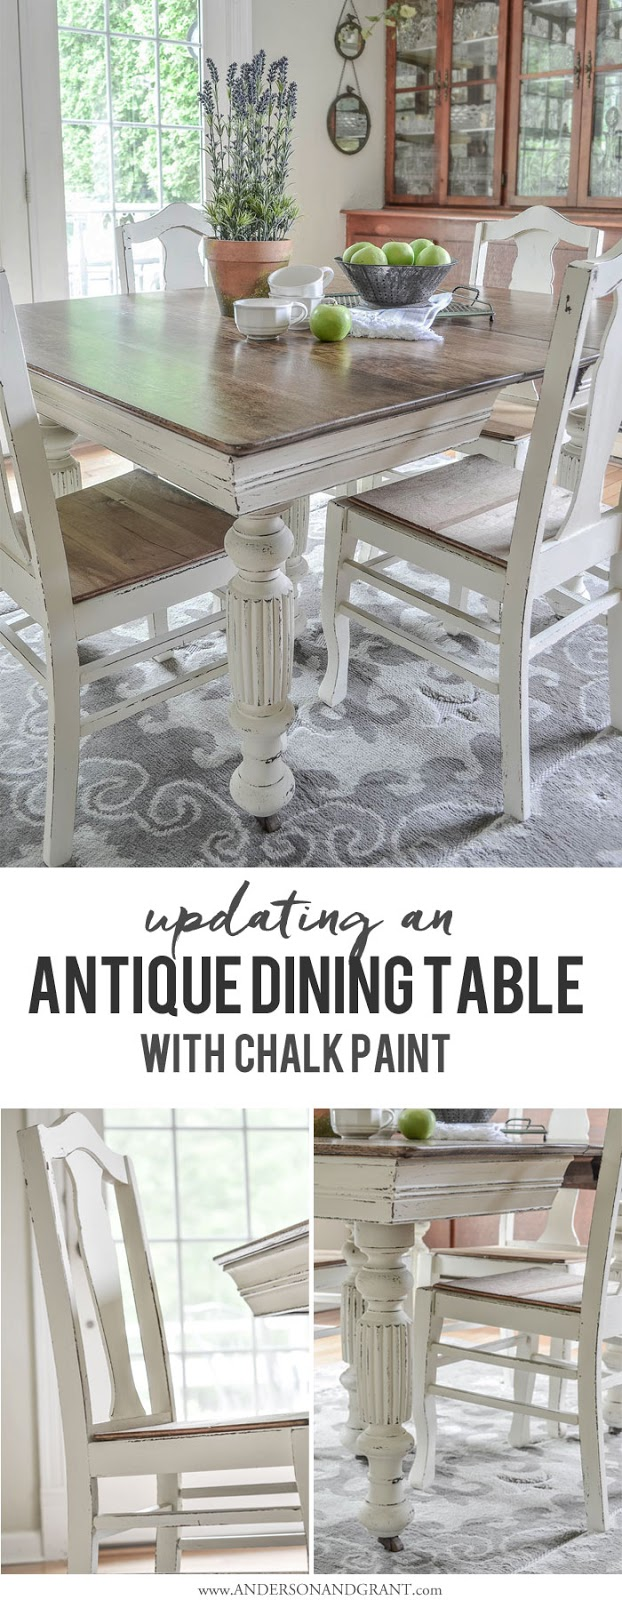 Admirable Antique Dining Table Updated With Chalk Paint Anderson Grant Download Free Architecture Designs Grimeyleaguecom